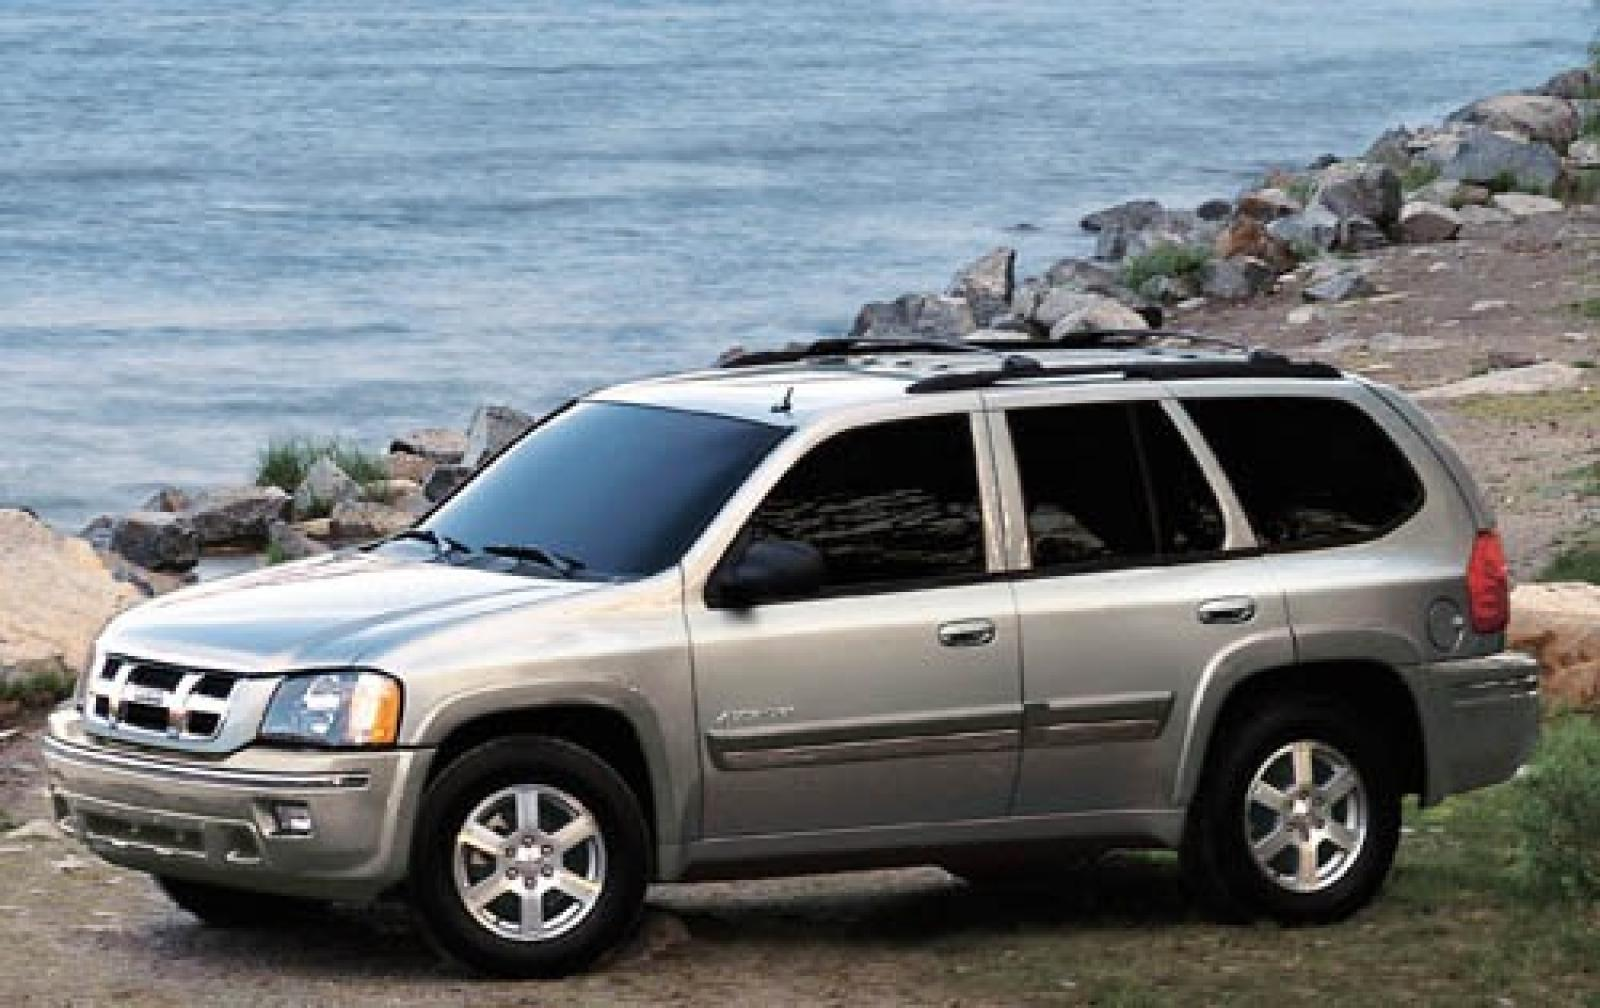 2007 isuzu ascender information and photos zombiedrive rh zombdrive com Isuzu Rodeo Isuzu Oasis